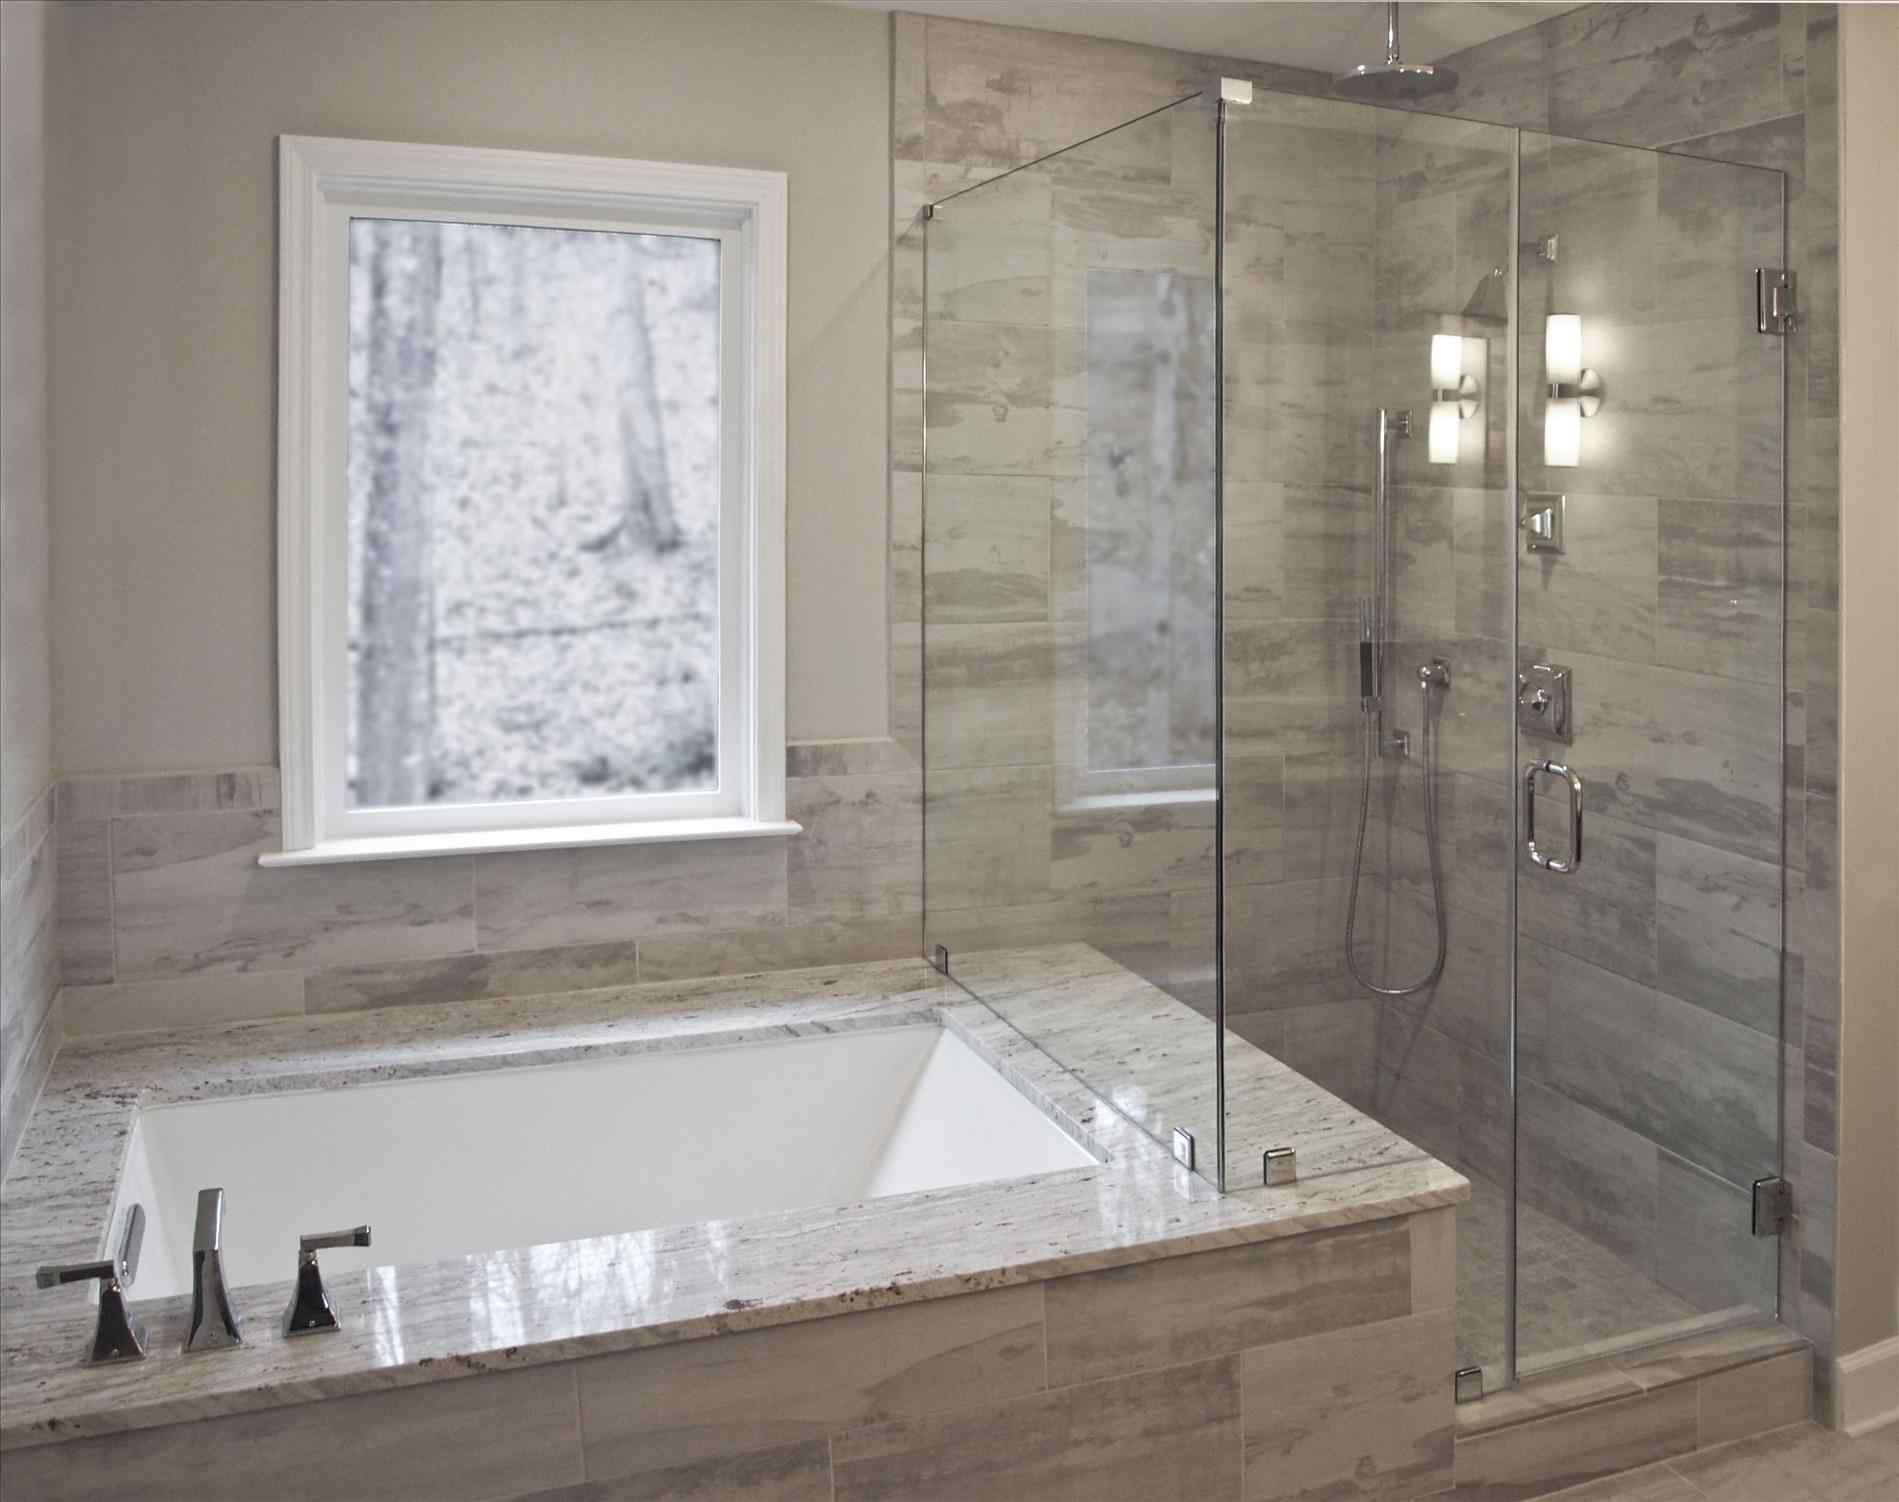 We Like This Shower With The Tub Next To It But Shower Is On The Small Side We Have To Figure Ou Bathroom Remodel Shower Bathtub Remodel Diy Bathroom Remodel